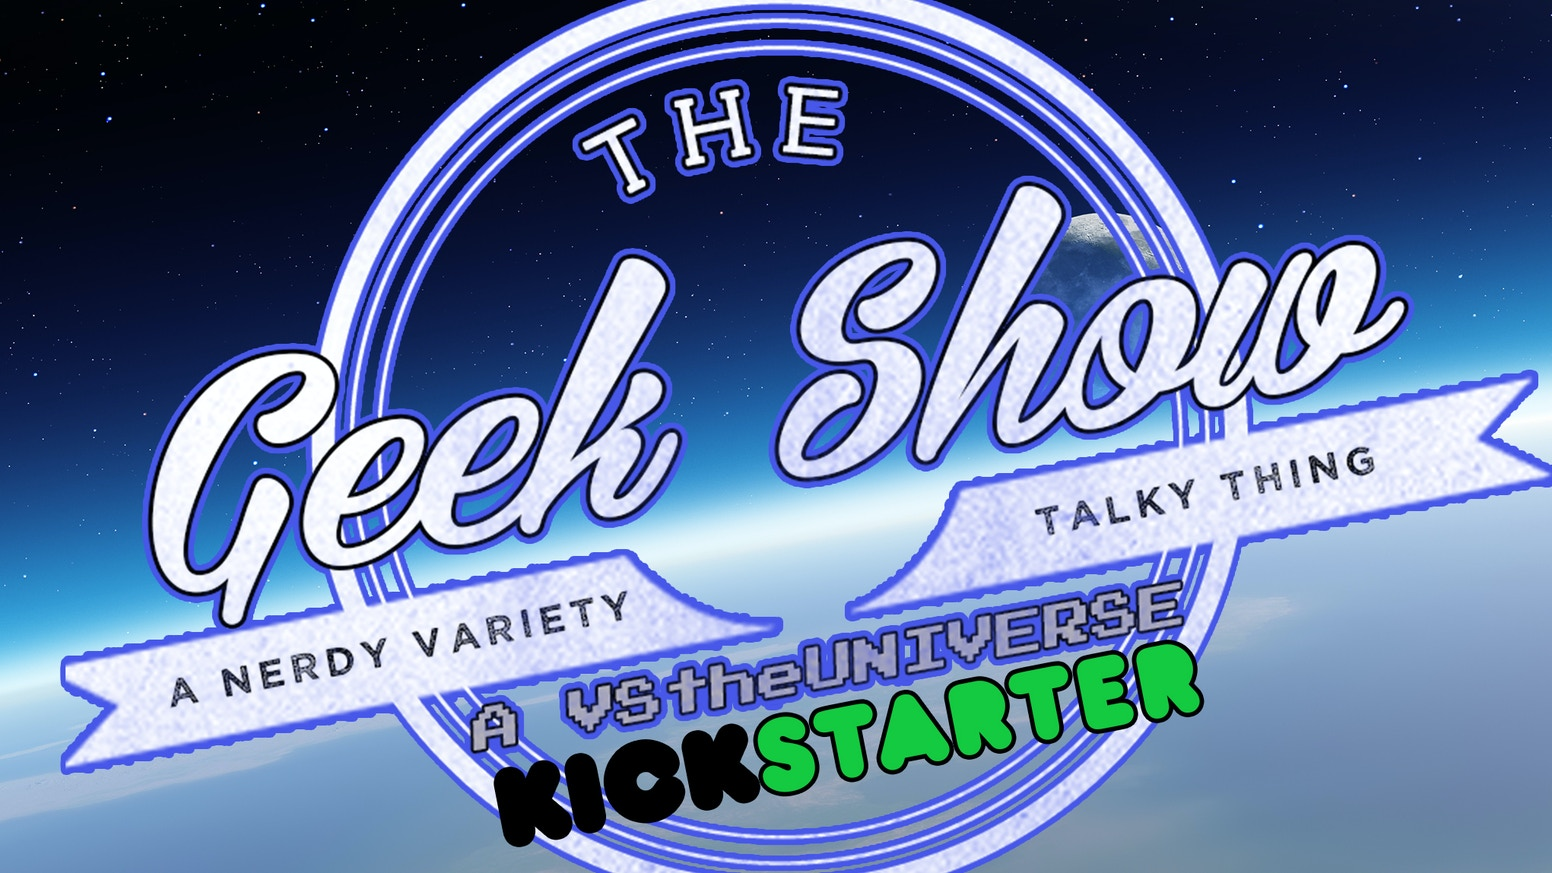 The Geek Show is a variety show with guests, games, sketches, and a focus on the Nerd community in Chicago. Allons-y!